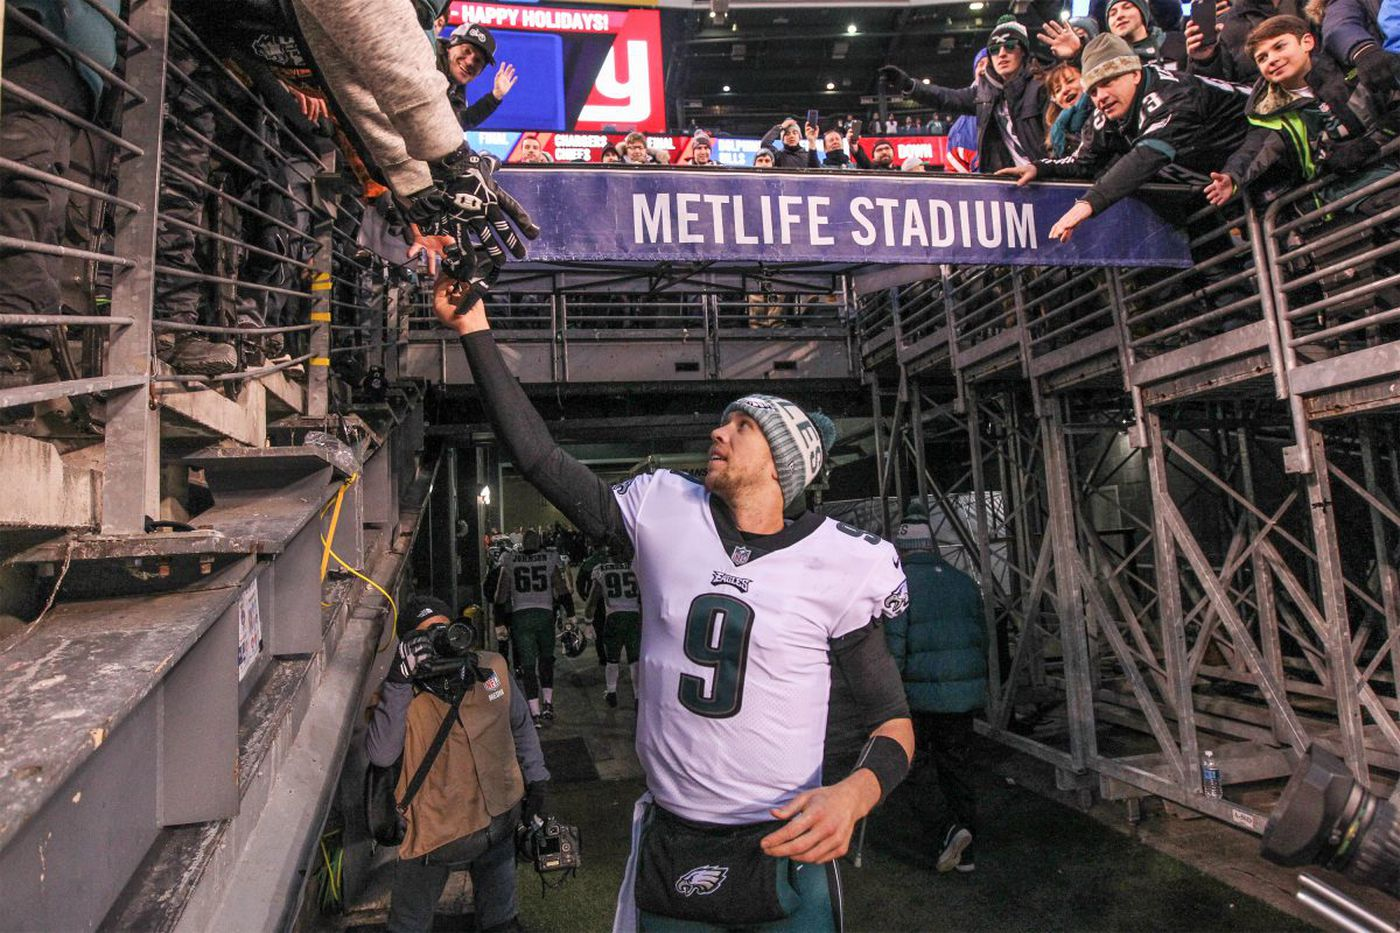 Eagles' Chance pays off this time, as Warmack steps in ably for Stefen Wisniewski